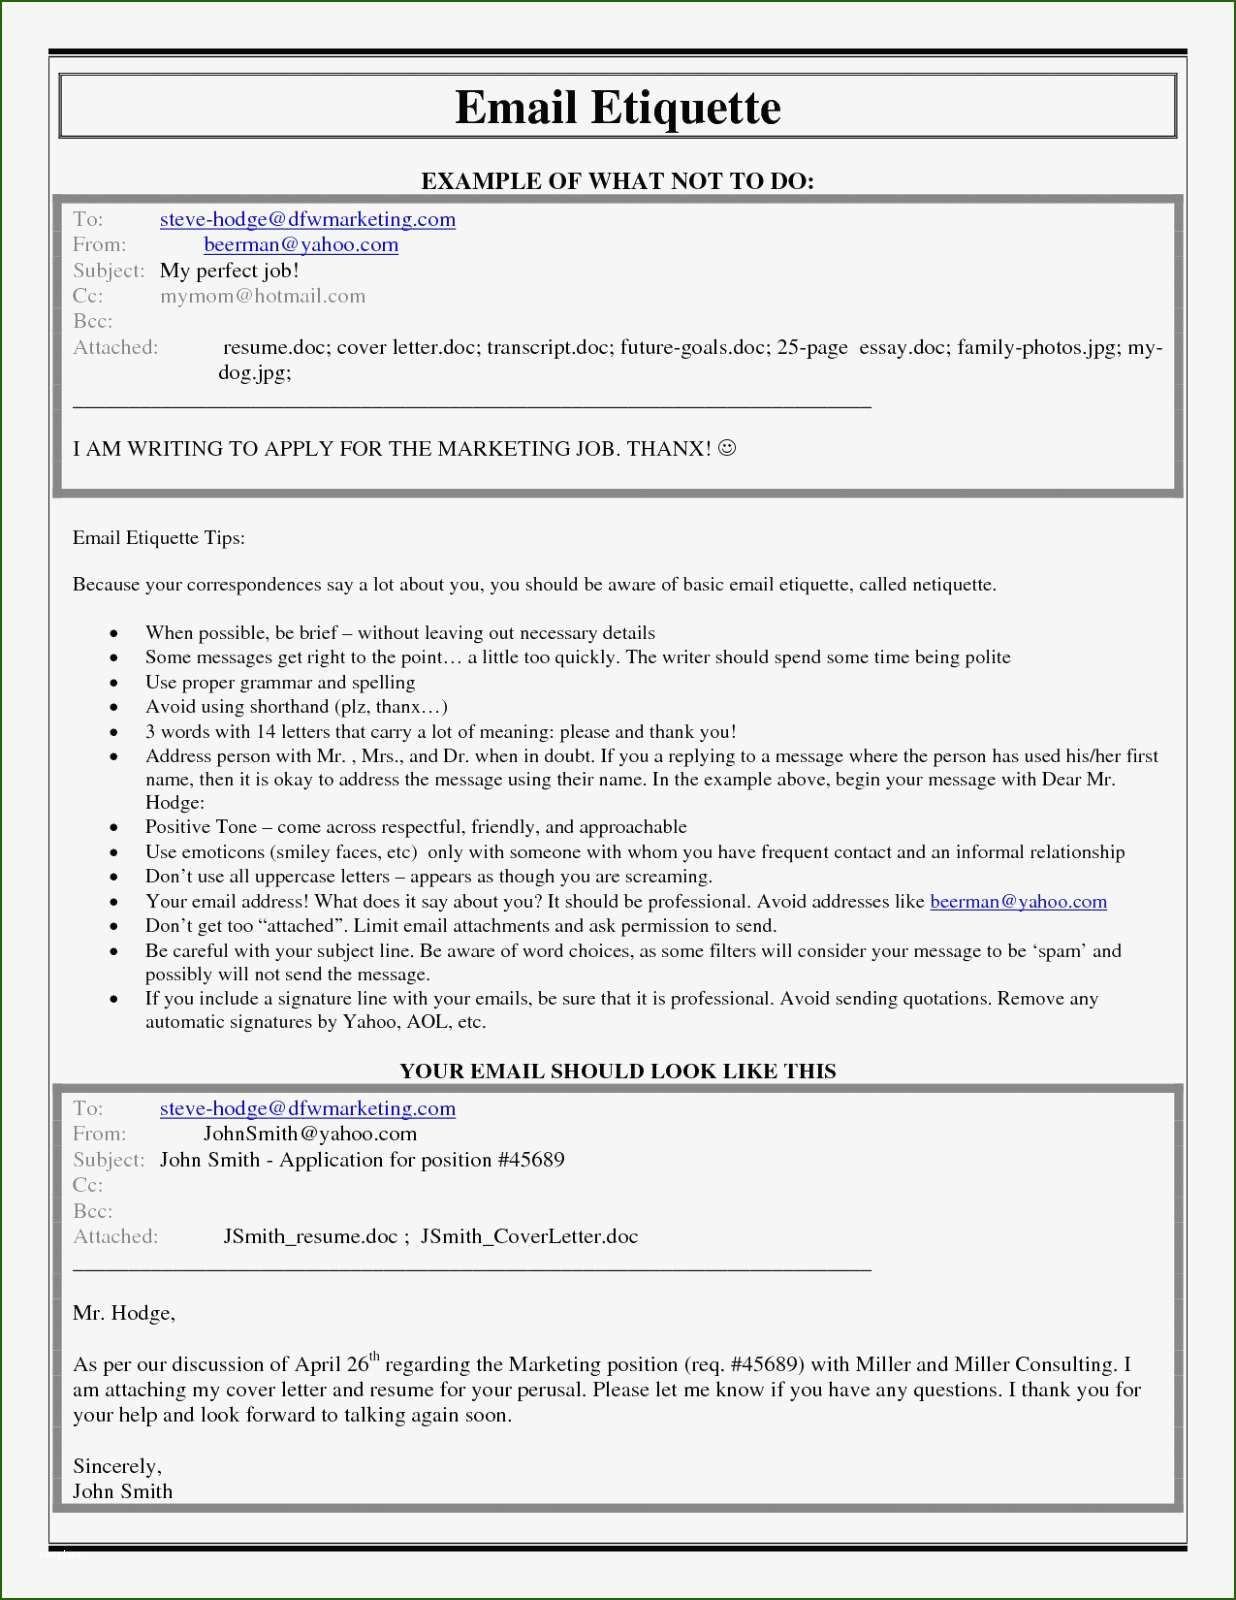 19 Breathtaking Email Template for Sending Resume for 2020